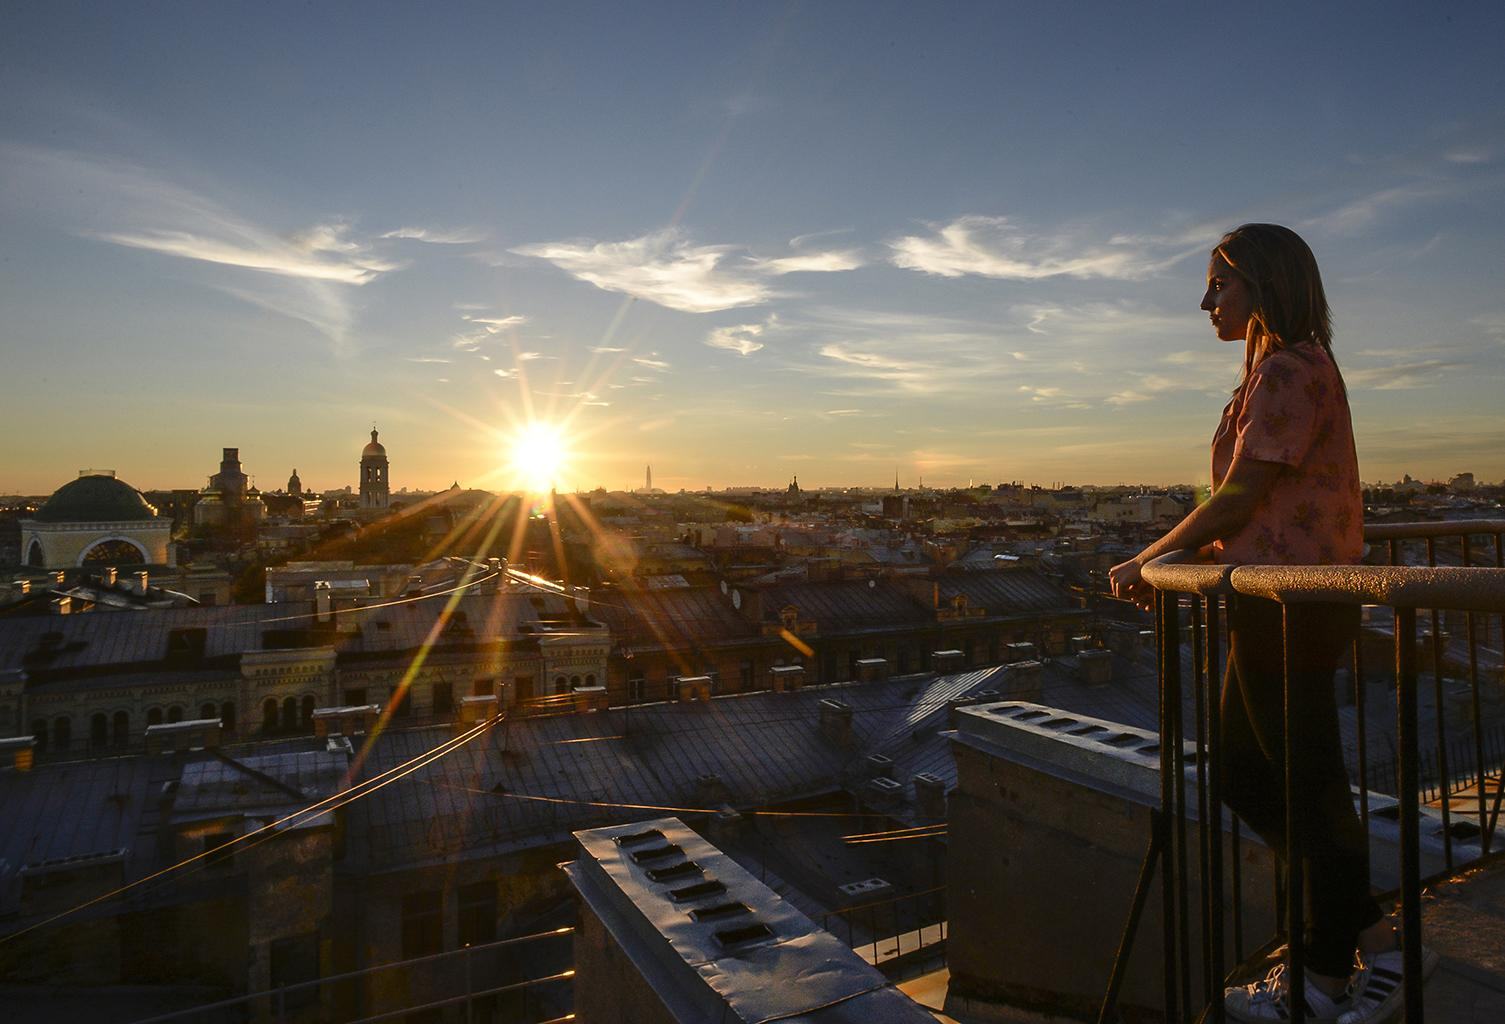 Legal highs: Rooftop tours offer fresh look at Saint Petersburg